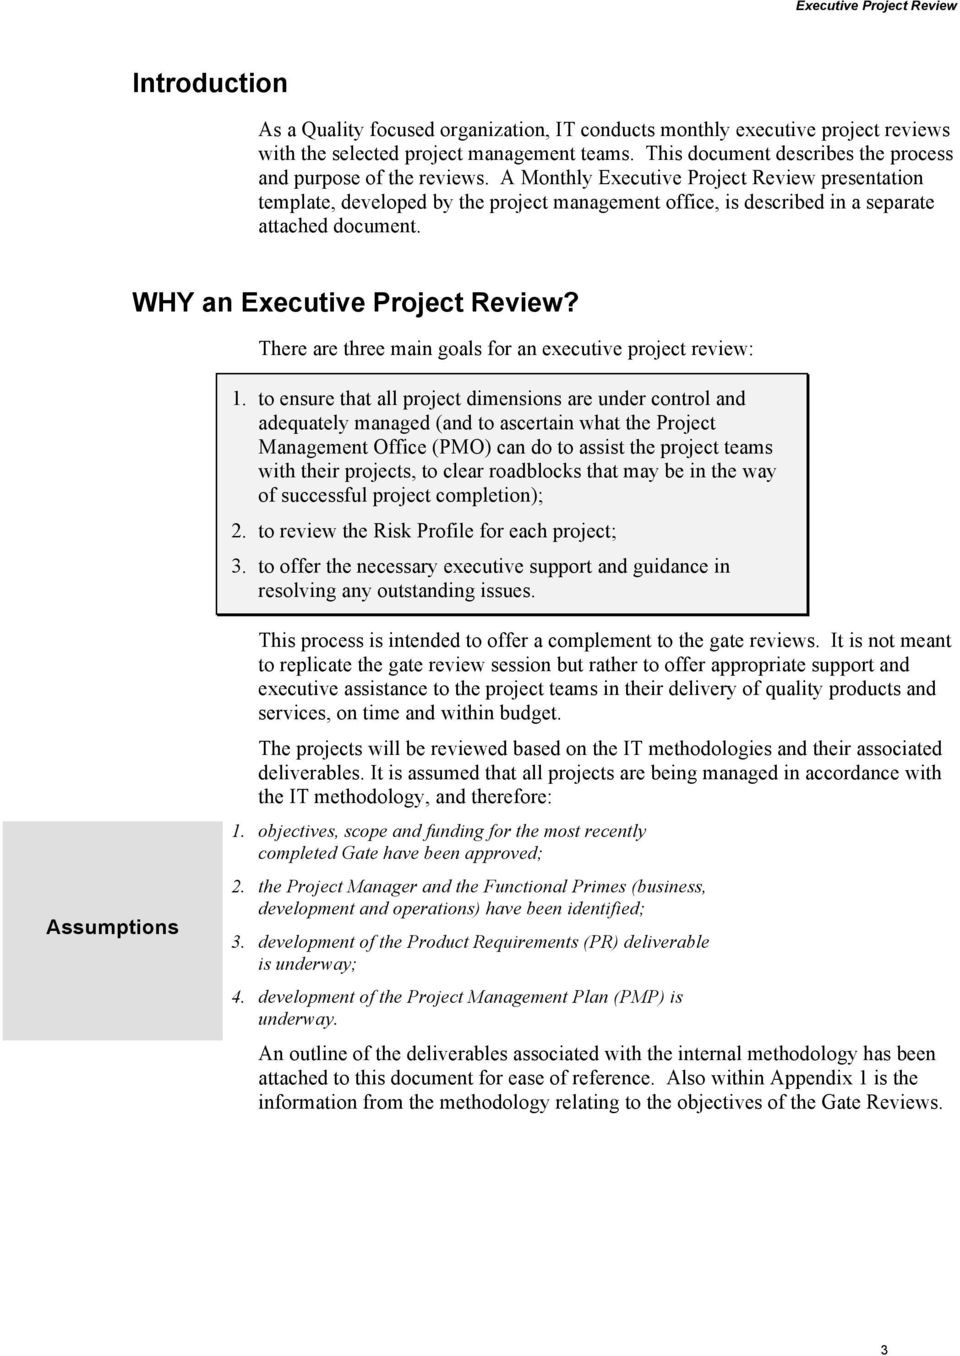 A Monthly Executive Project Review presentation template, developed by the project management office, is described in a separate attached document. WHY an Executive Project Review?